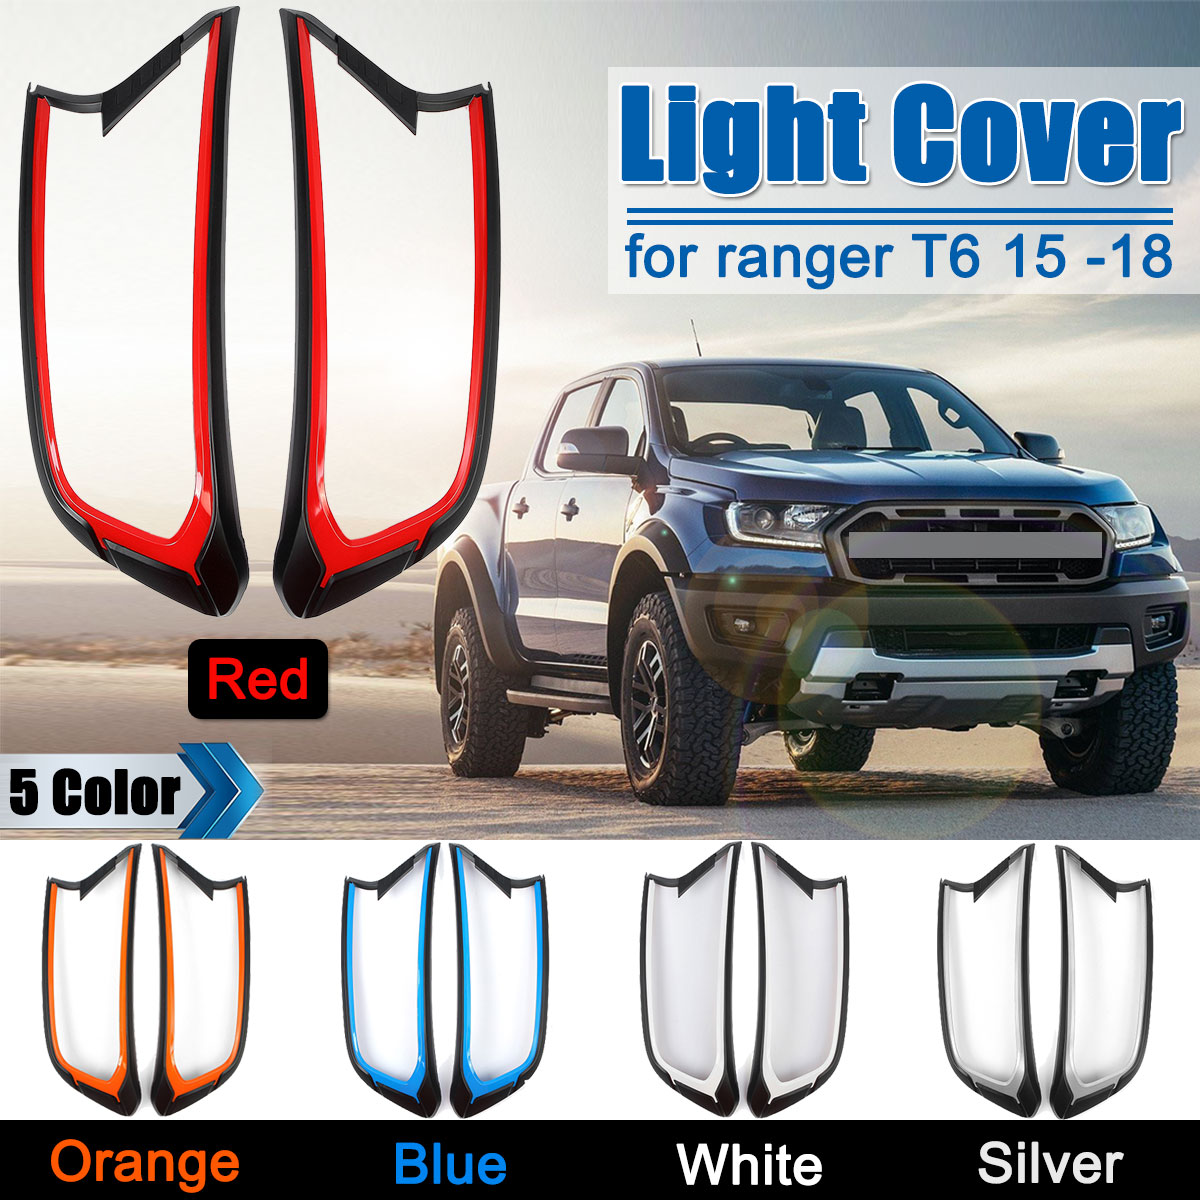 2Pcs set 5 Colors Head Light Front Covers Shell Lampshade Without Light For Ford Ranger T6